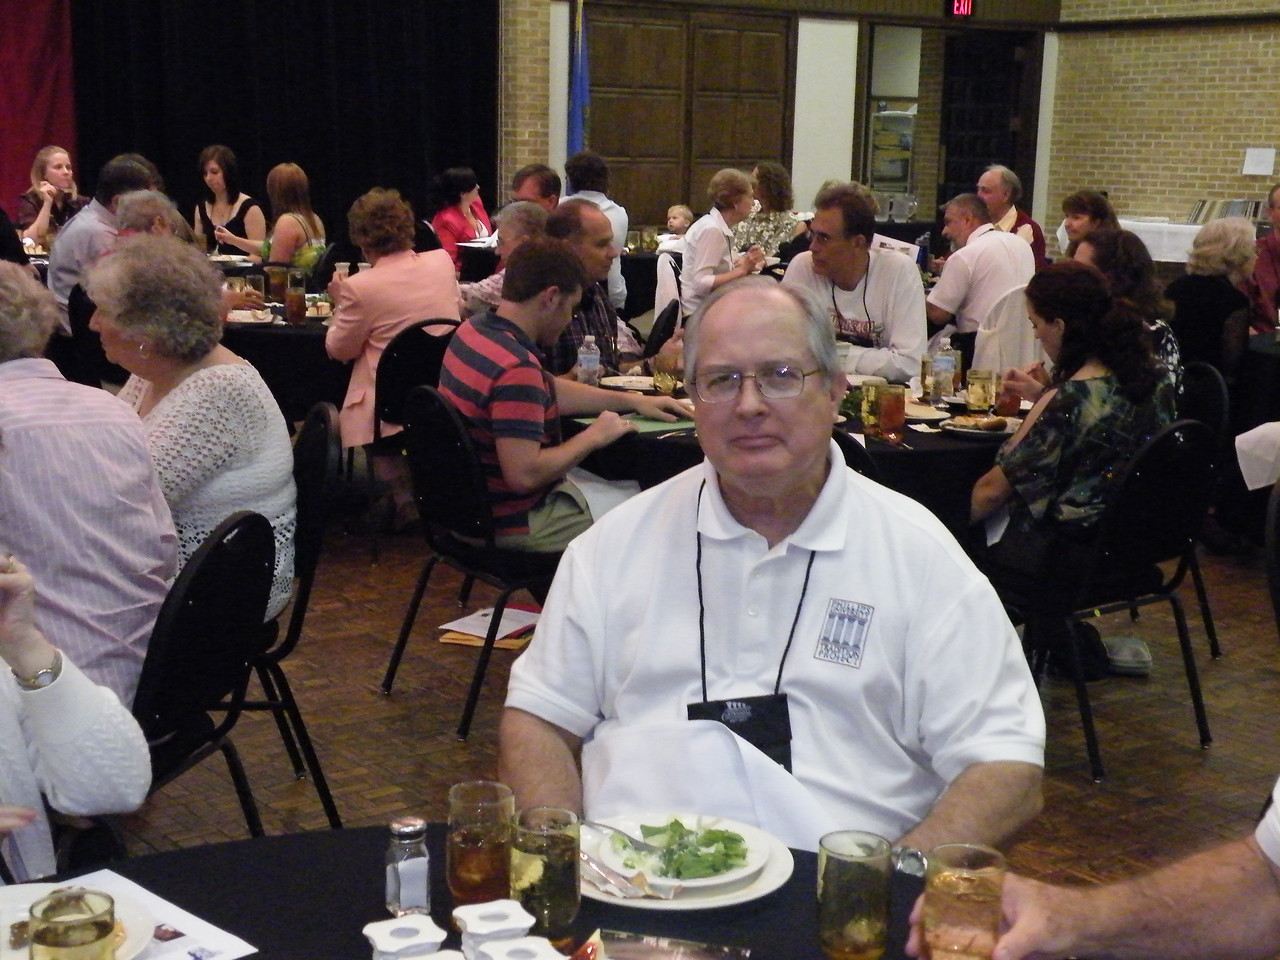 PULF President Jim Wright looks satisfied with his meal.